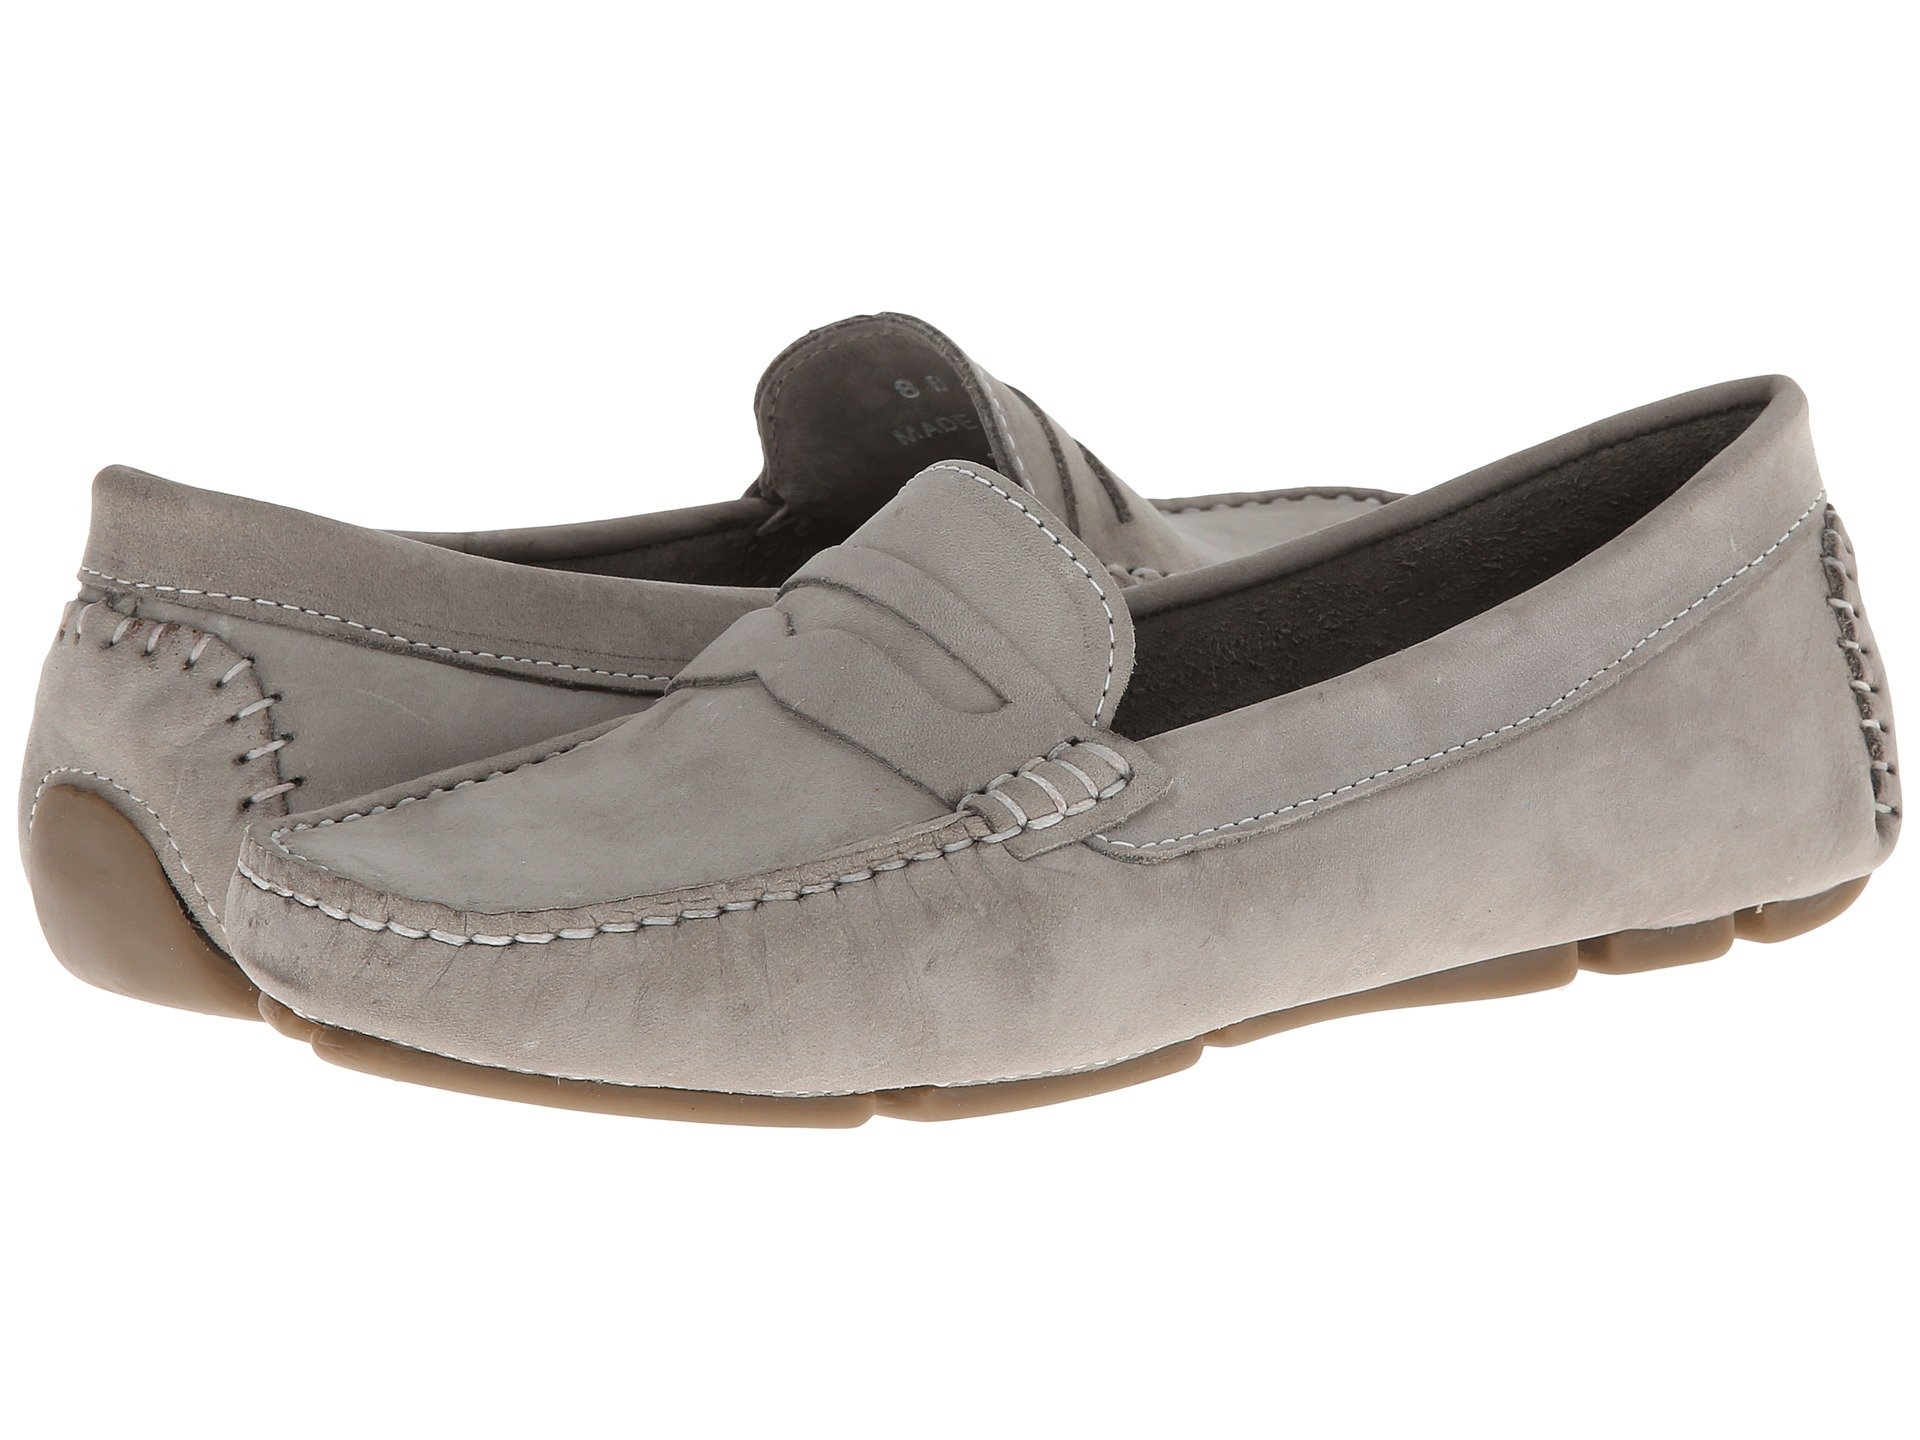 TC-6-Massimo-Womens-Loafers-2017-12-5